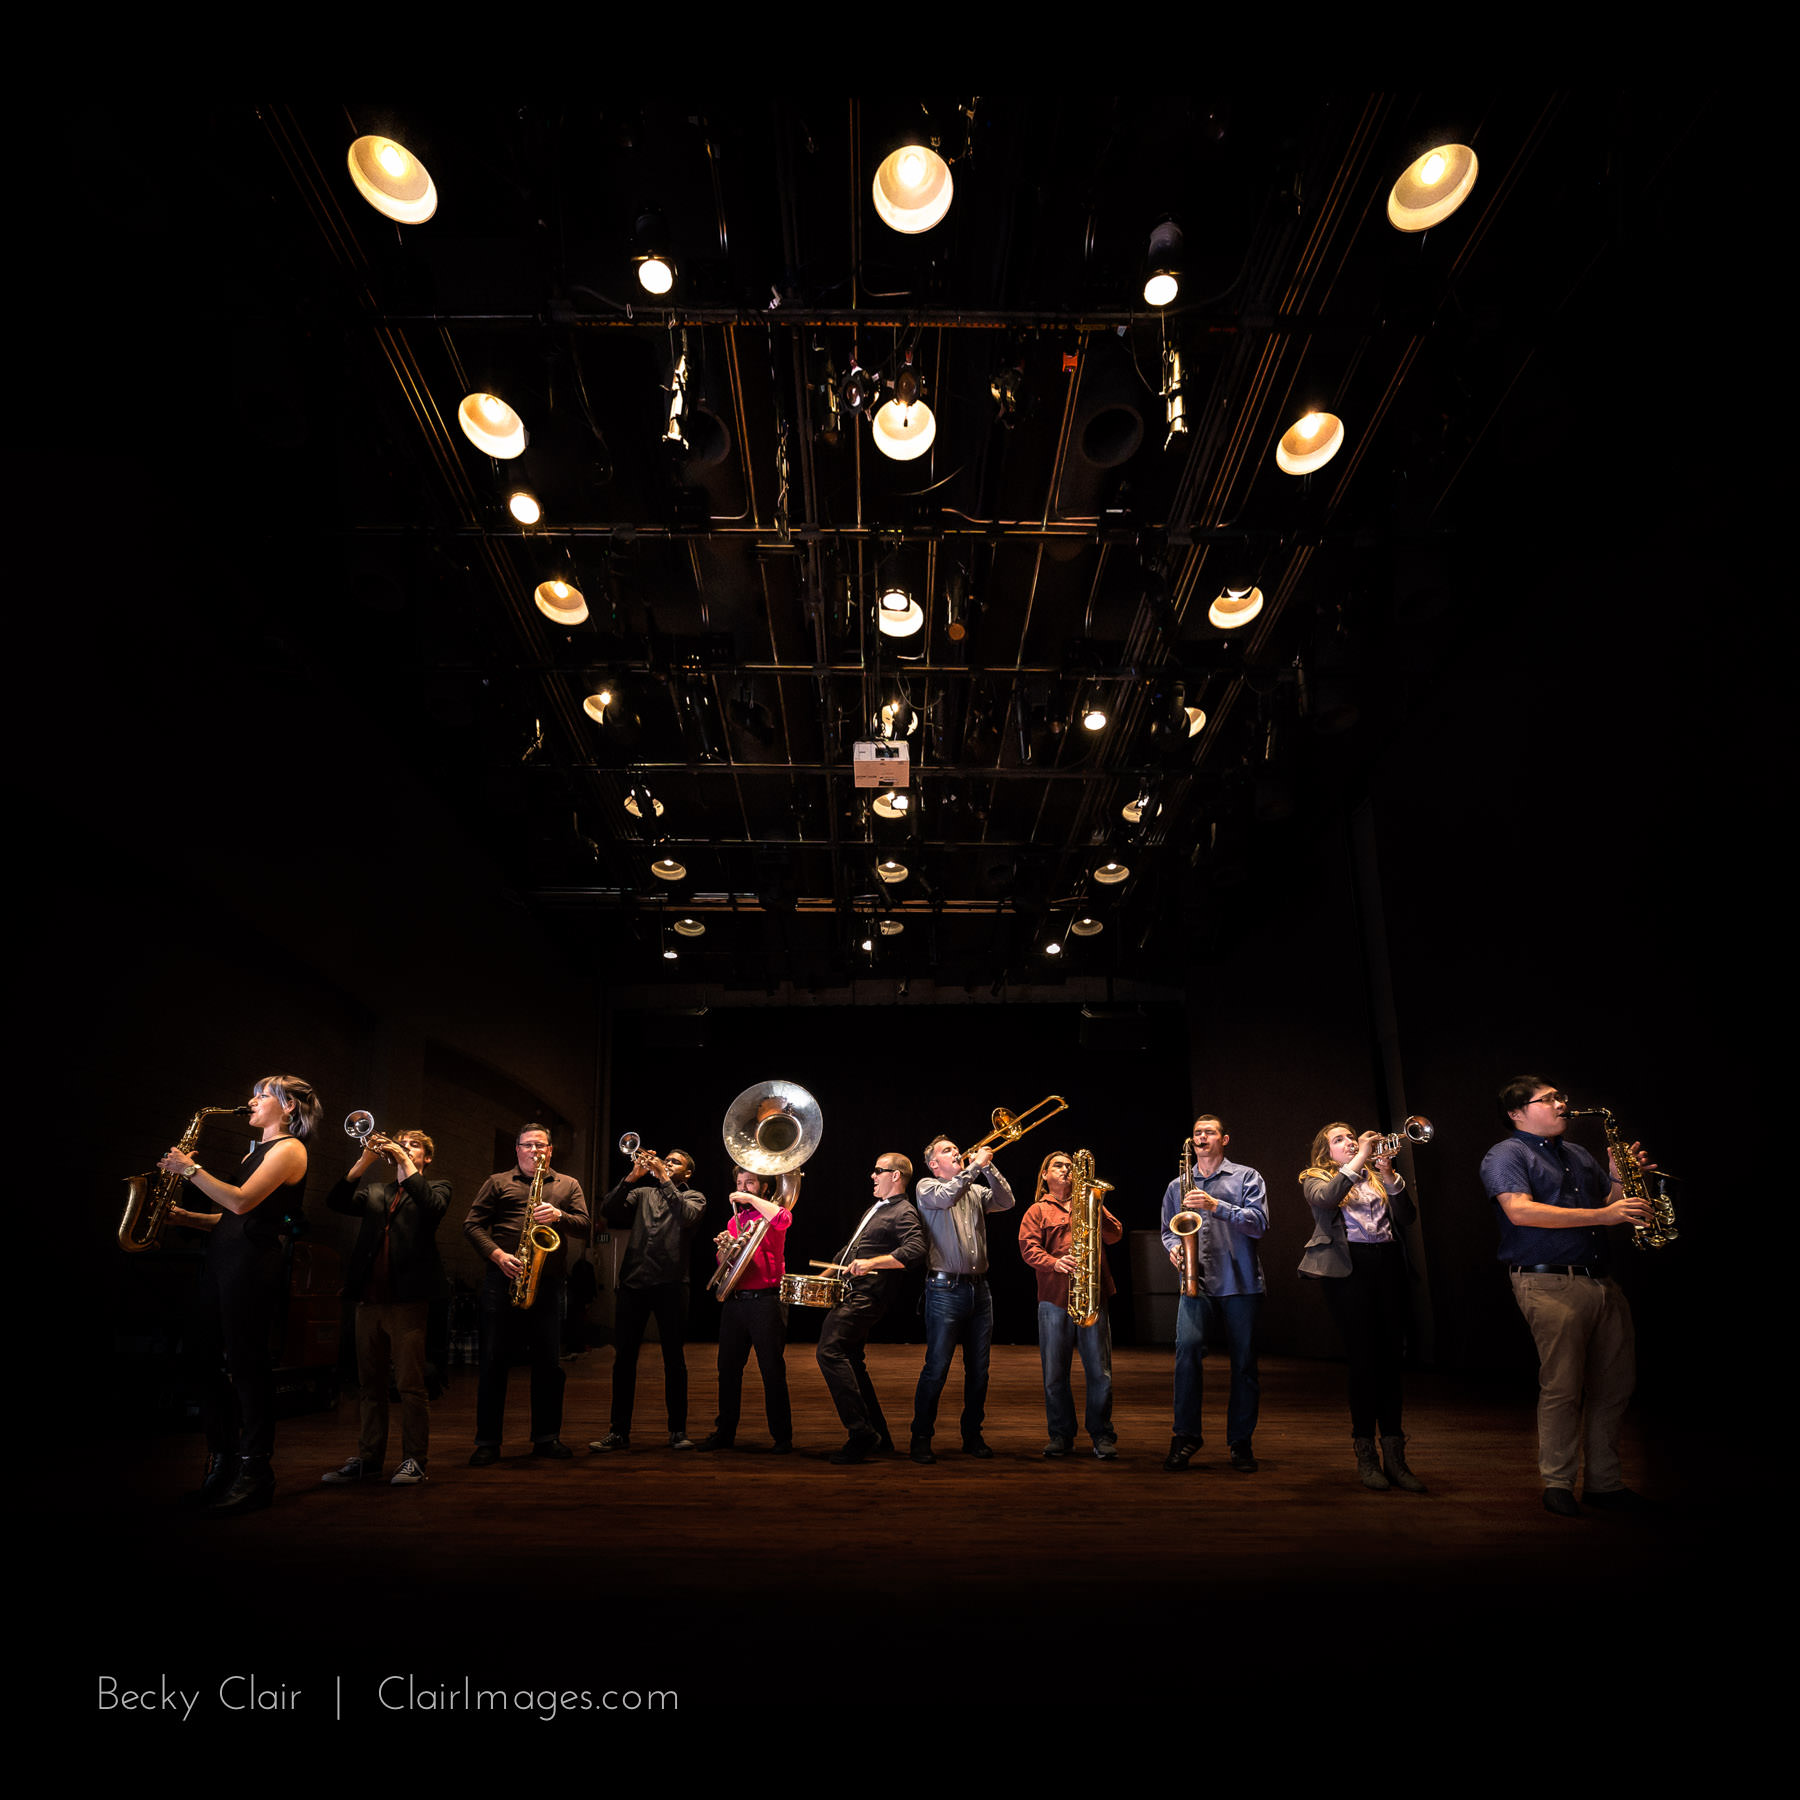 San Luis Obispo Music Photography - Brass Mash - Clair Images